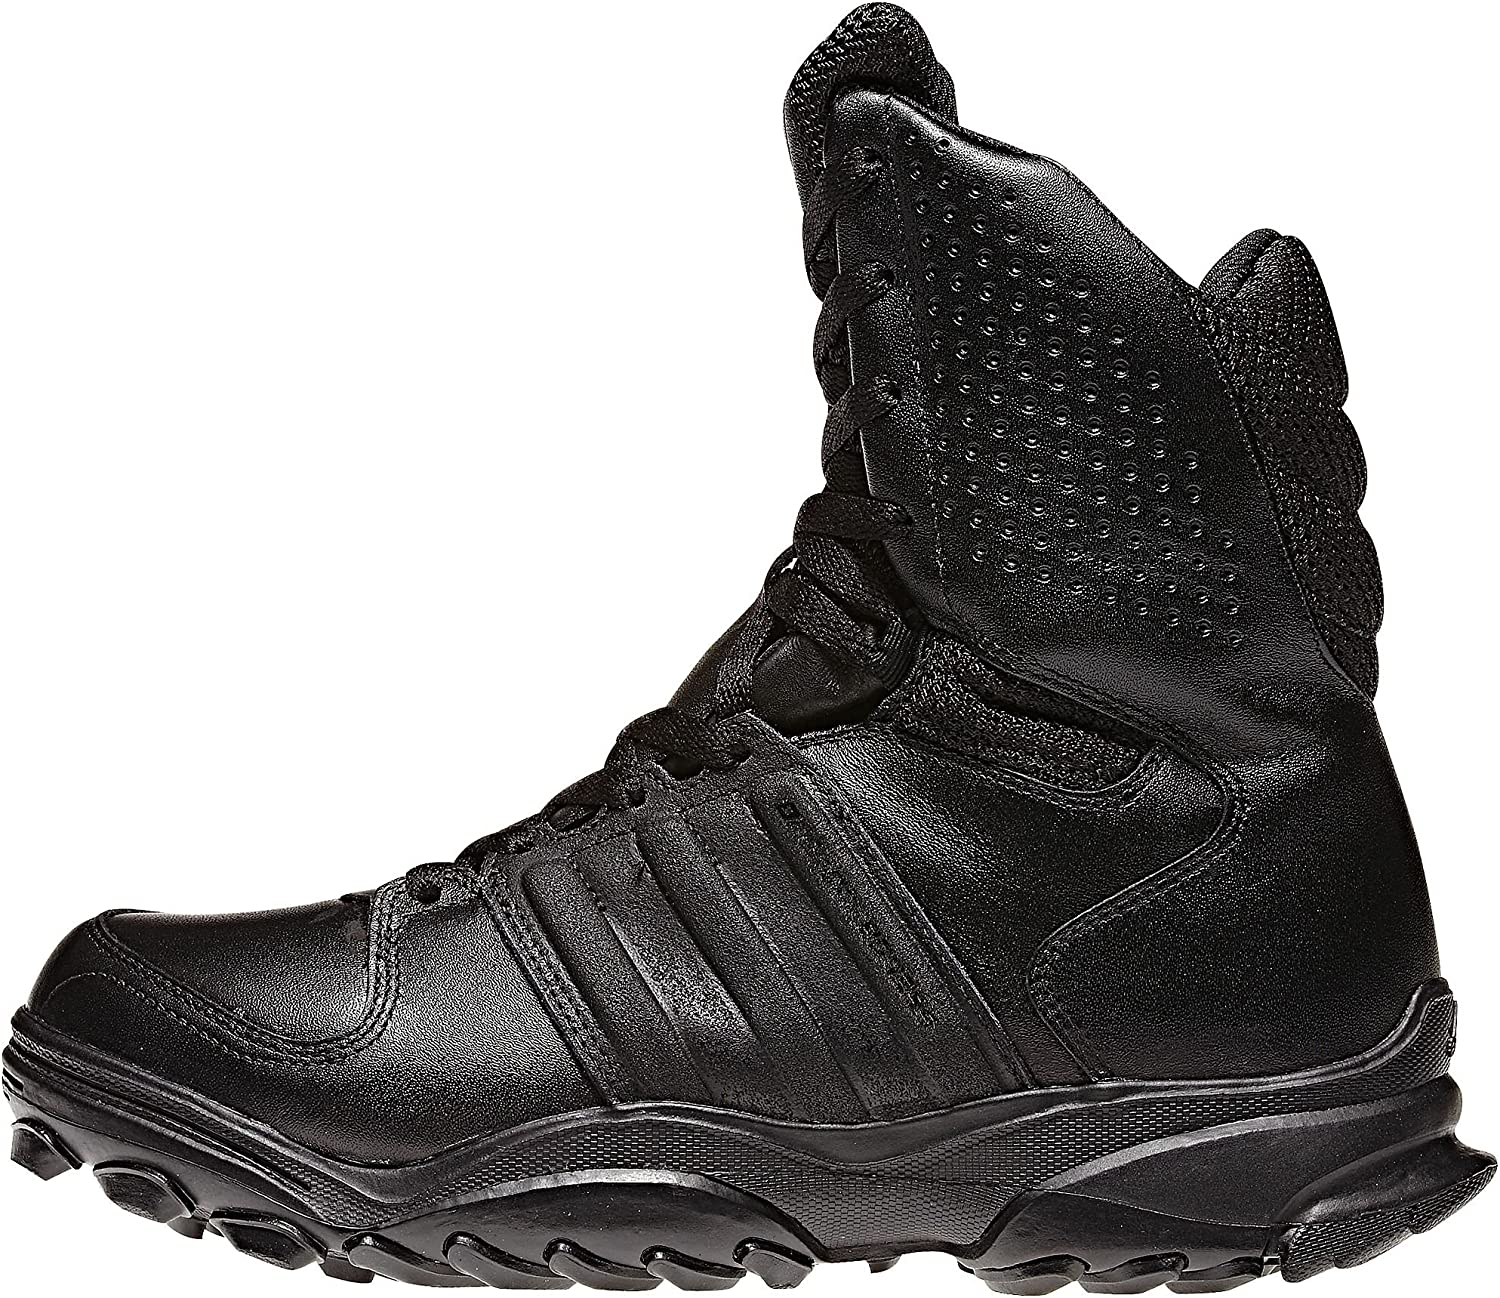 Partido perspectiva libertad  Adidas GSG 9.2 Hi Black Desert Military Boots Size 12 UK: Amazon.co.uk:  Shoes & Bags